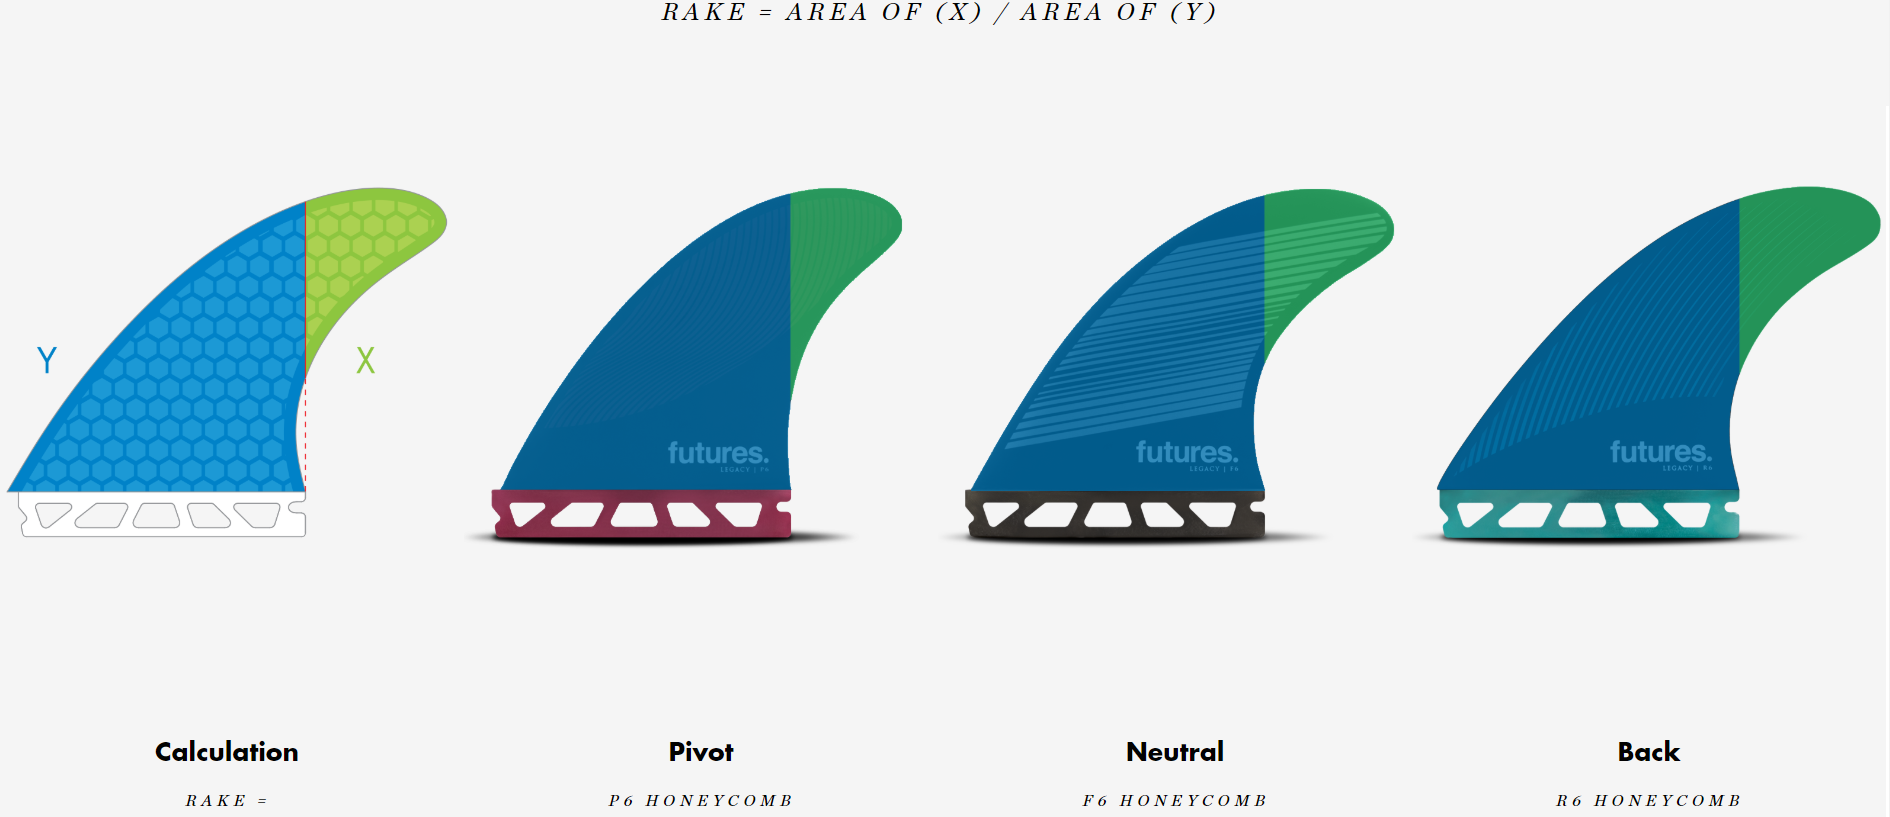 rake surfboard futures fin ride number